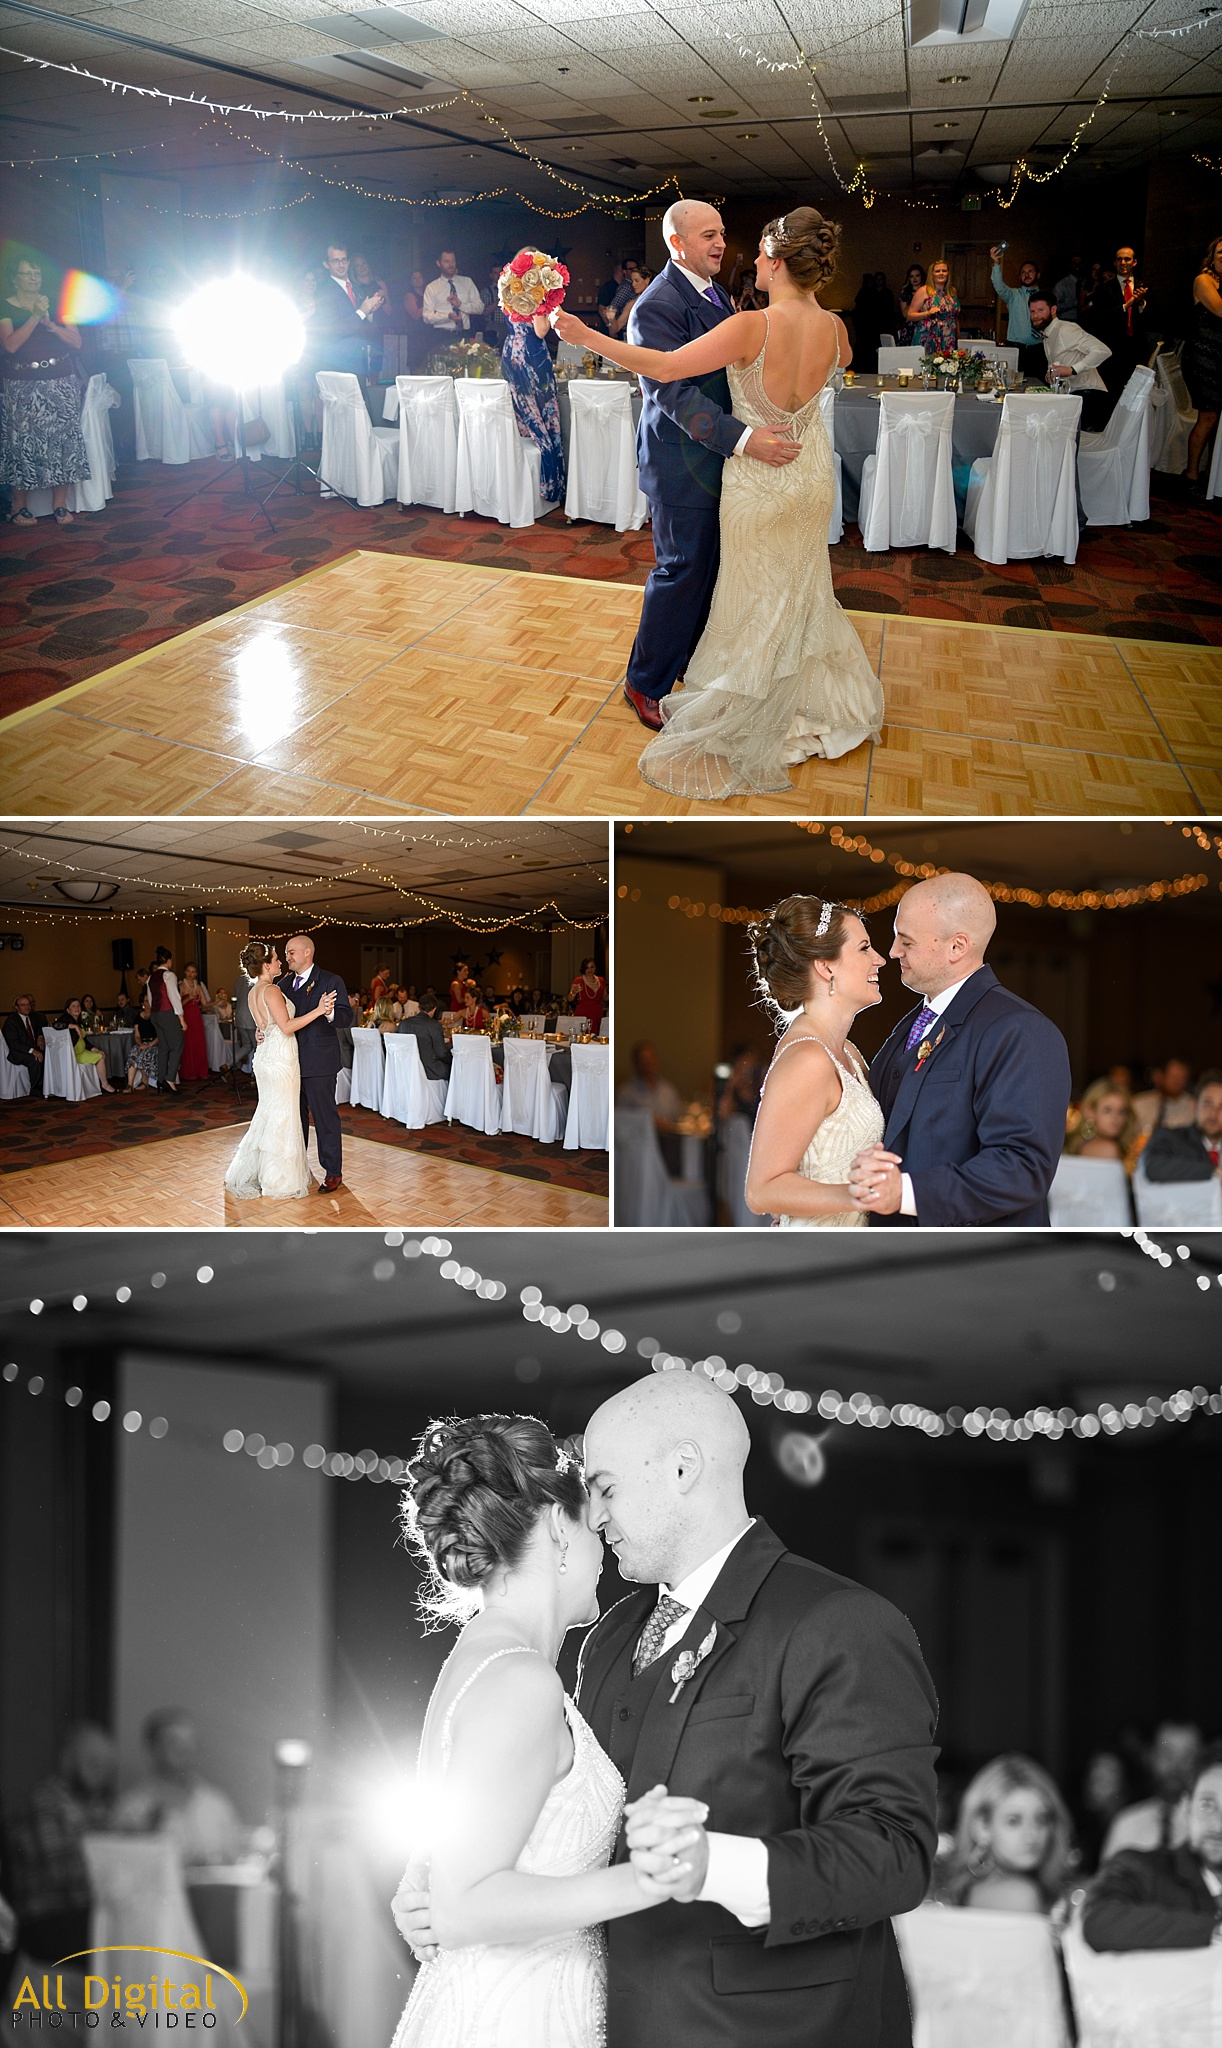 Mary & Jeremy's First Dance at the Golden Hotel photographed by All Digital Studios.